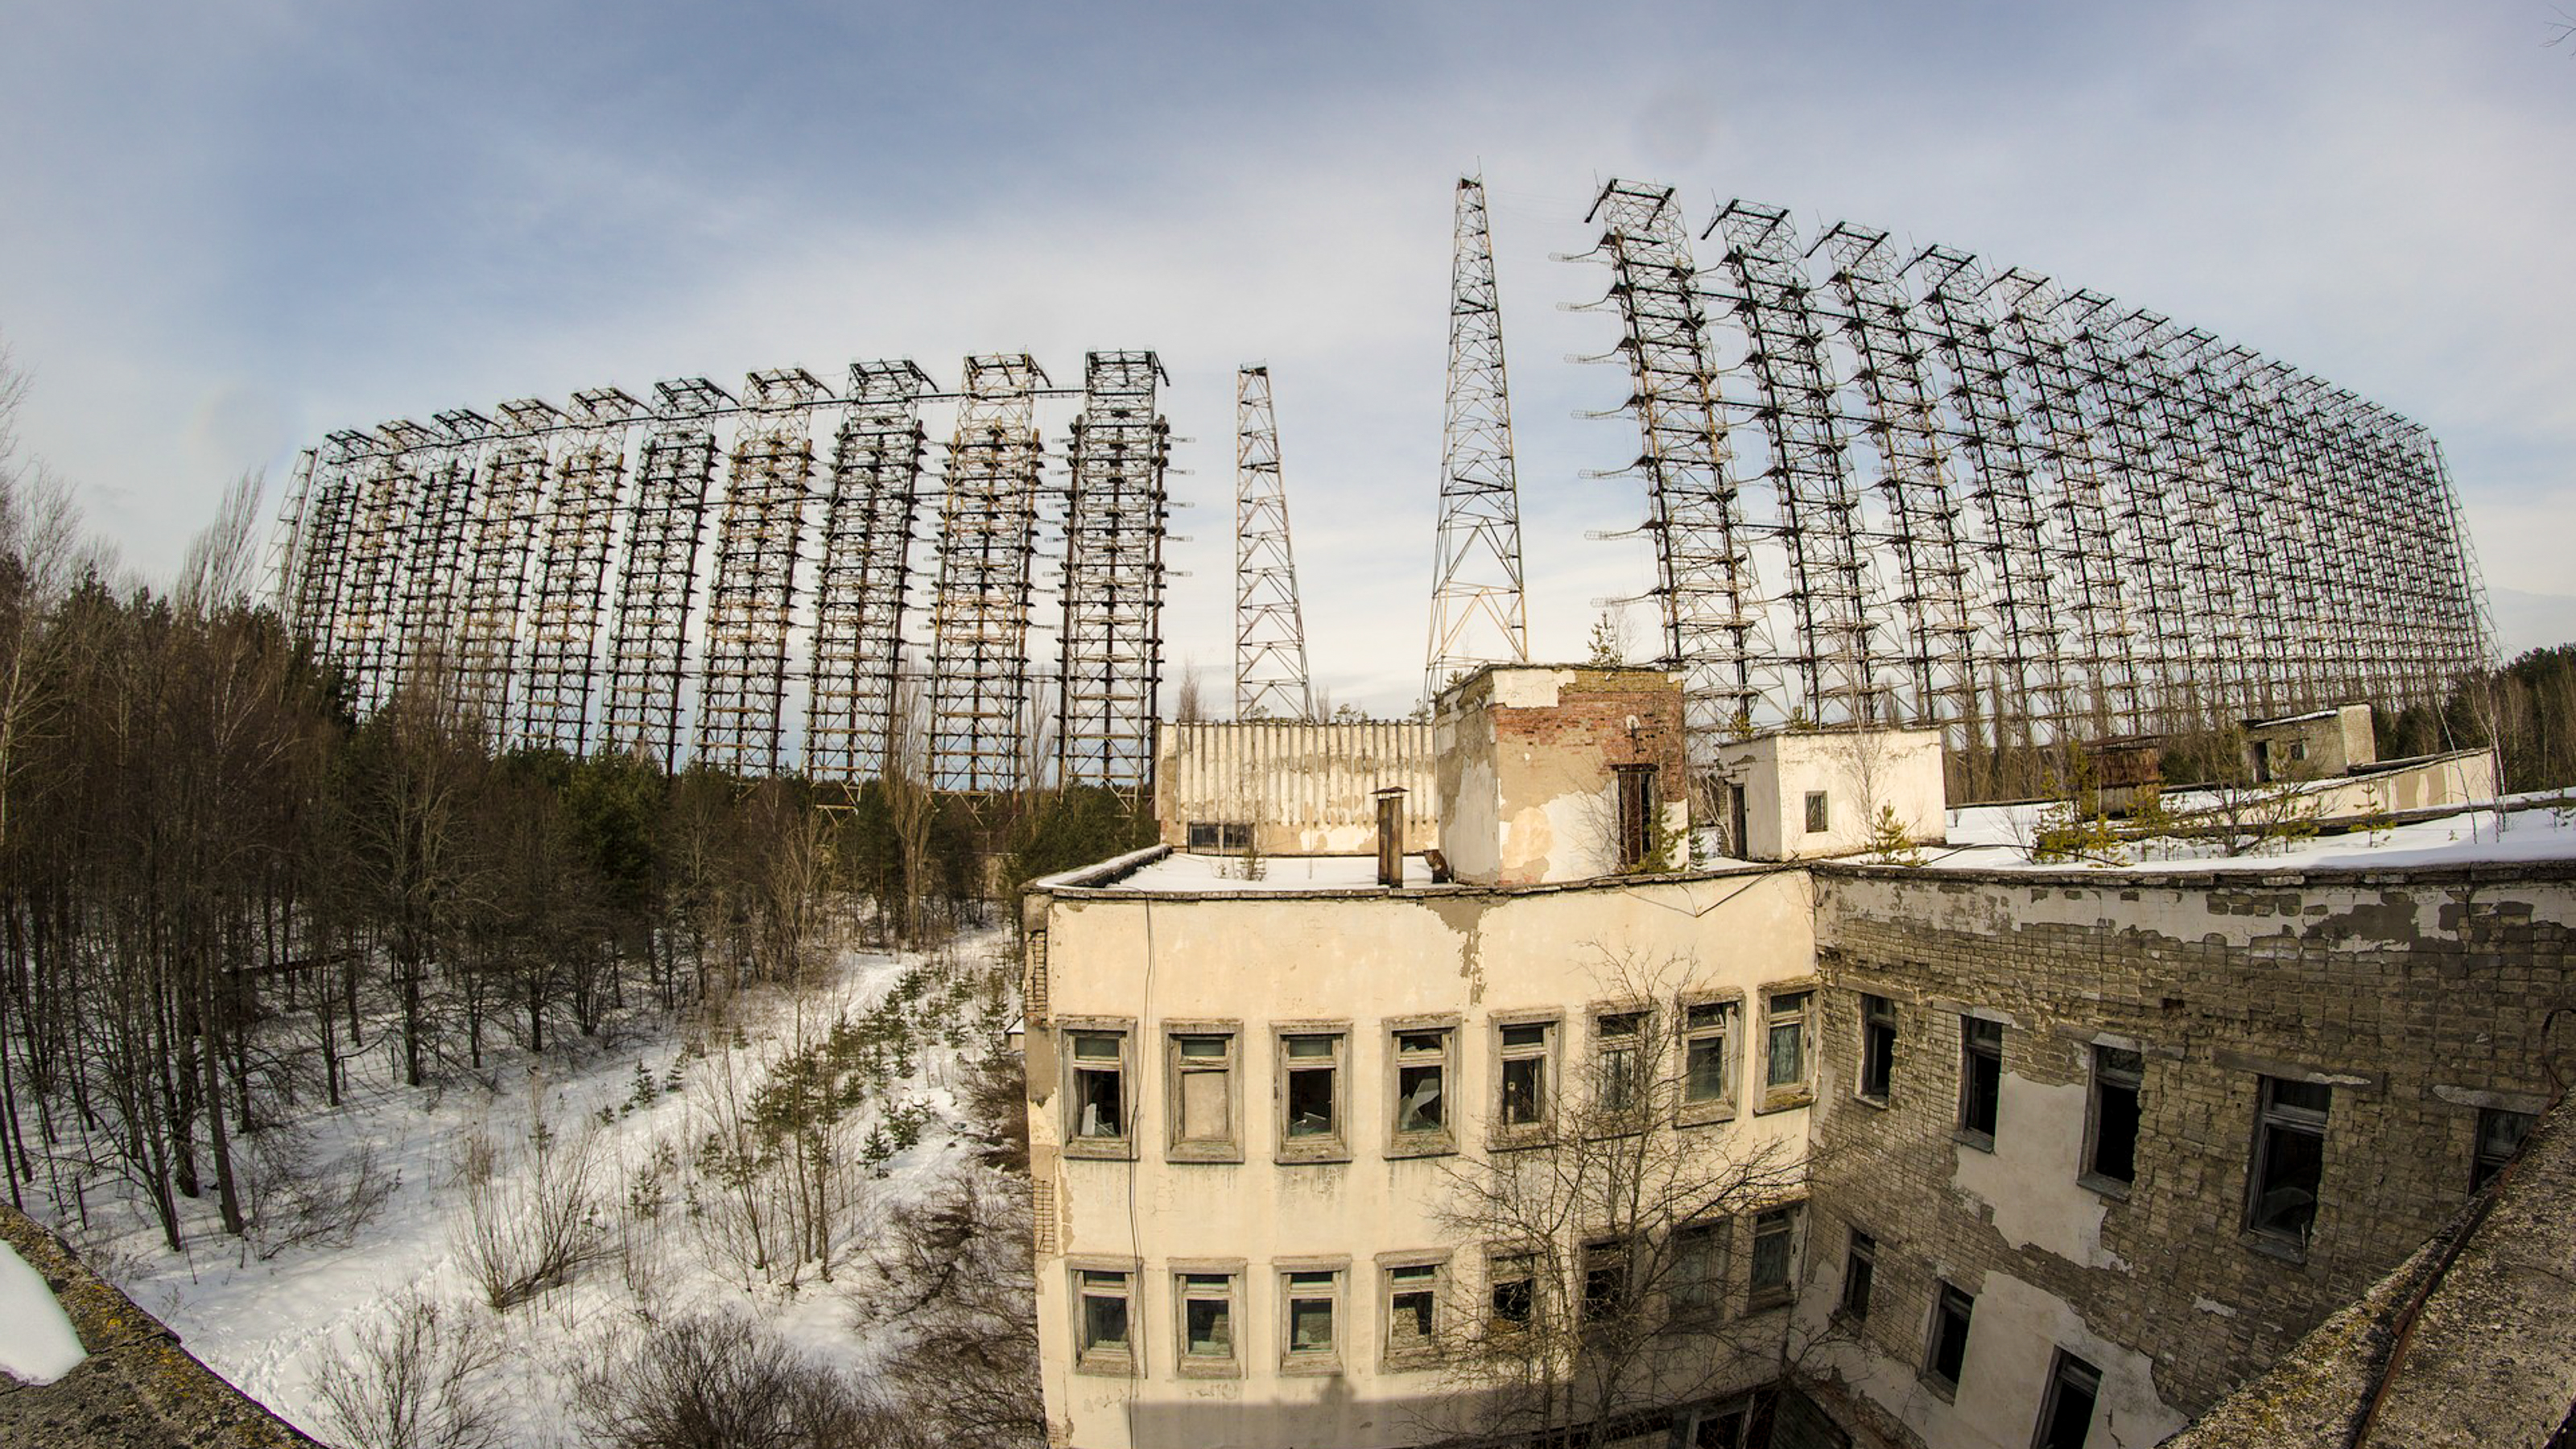 Duga radar: Enormous station is hidden in forests of ... on aerial view of chernobyl, city of chernobyl, topo map of chernobyl, satellite view of chernobyl, world map of chernobyl, physical map of chernobyl,